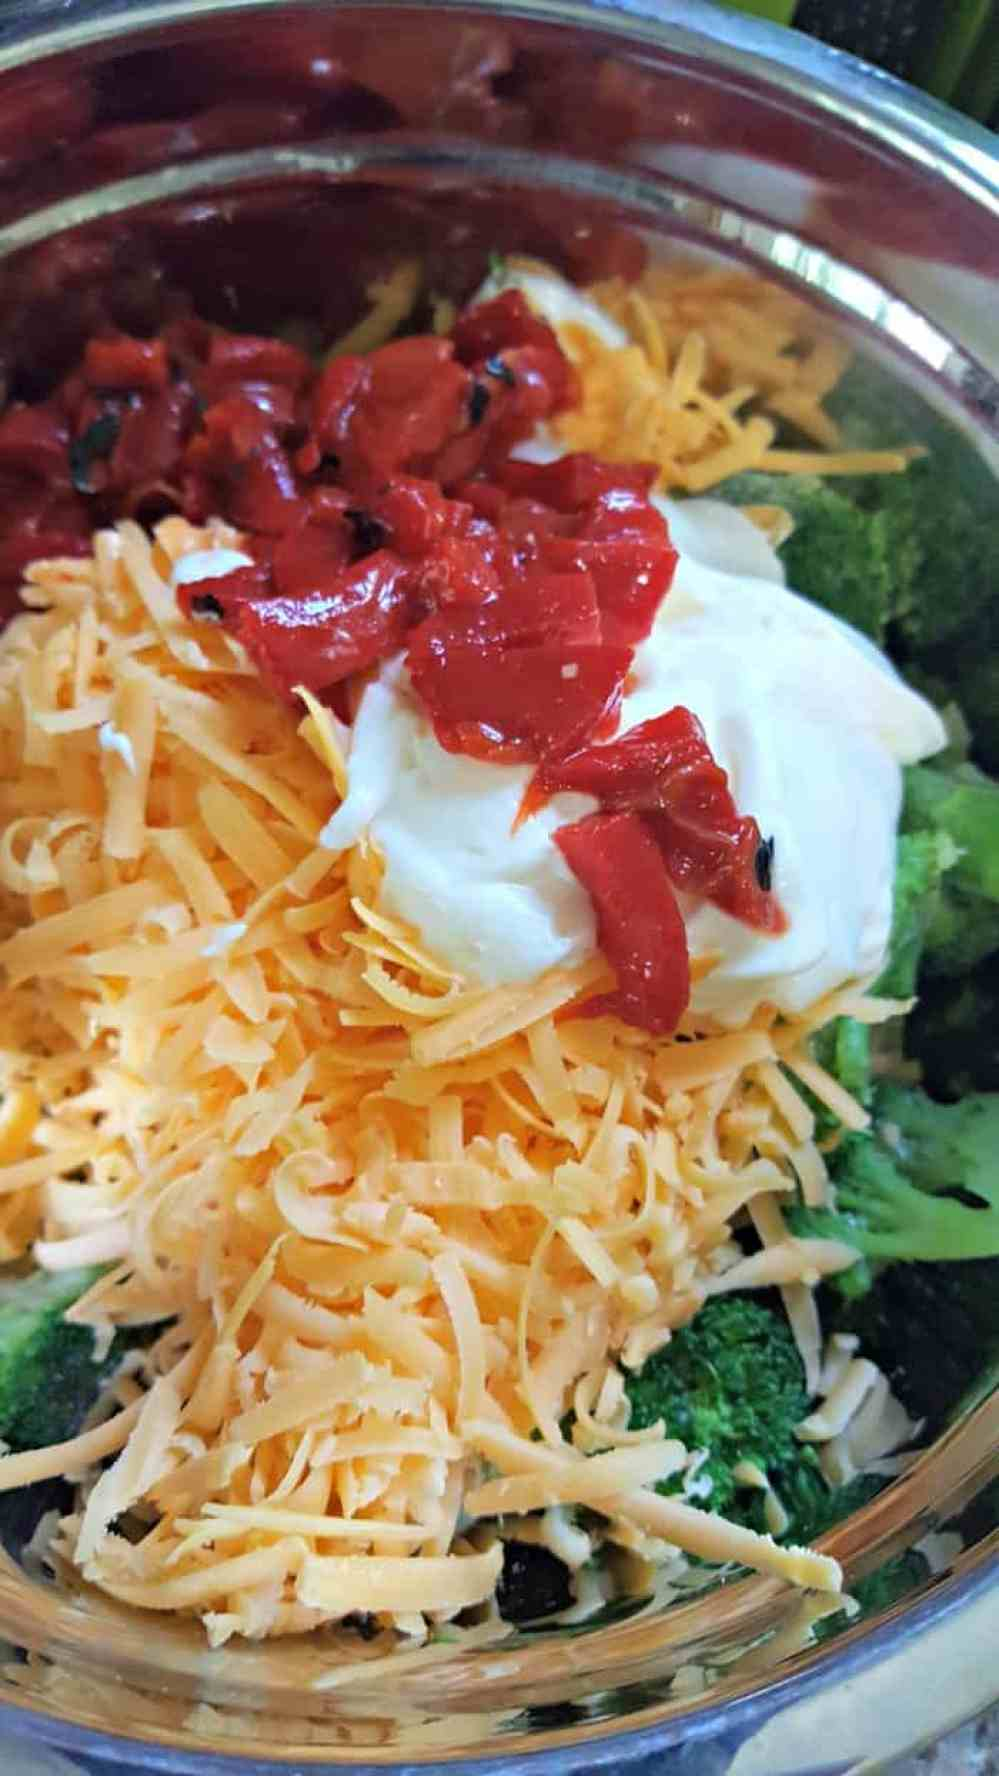 broccoli cheese chicken bake recipe ingredients adding roasted red pepper